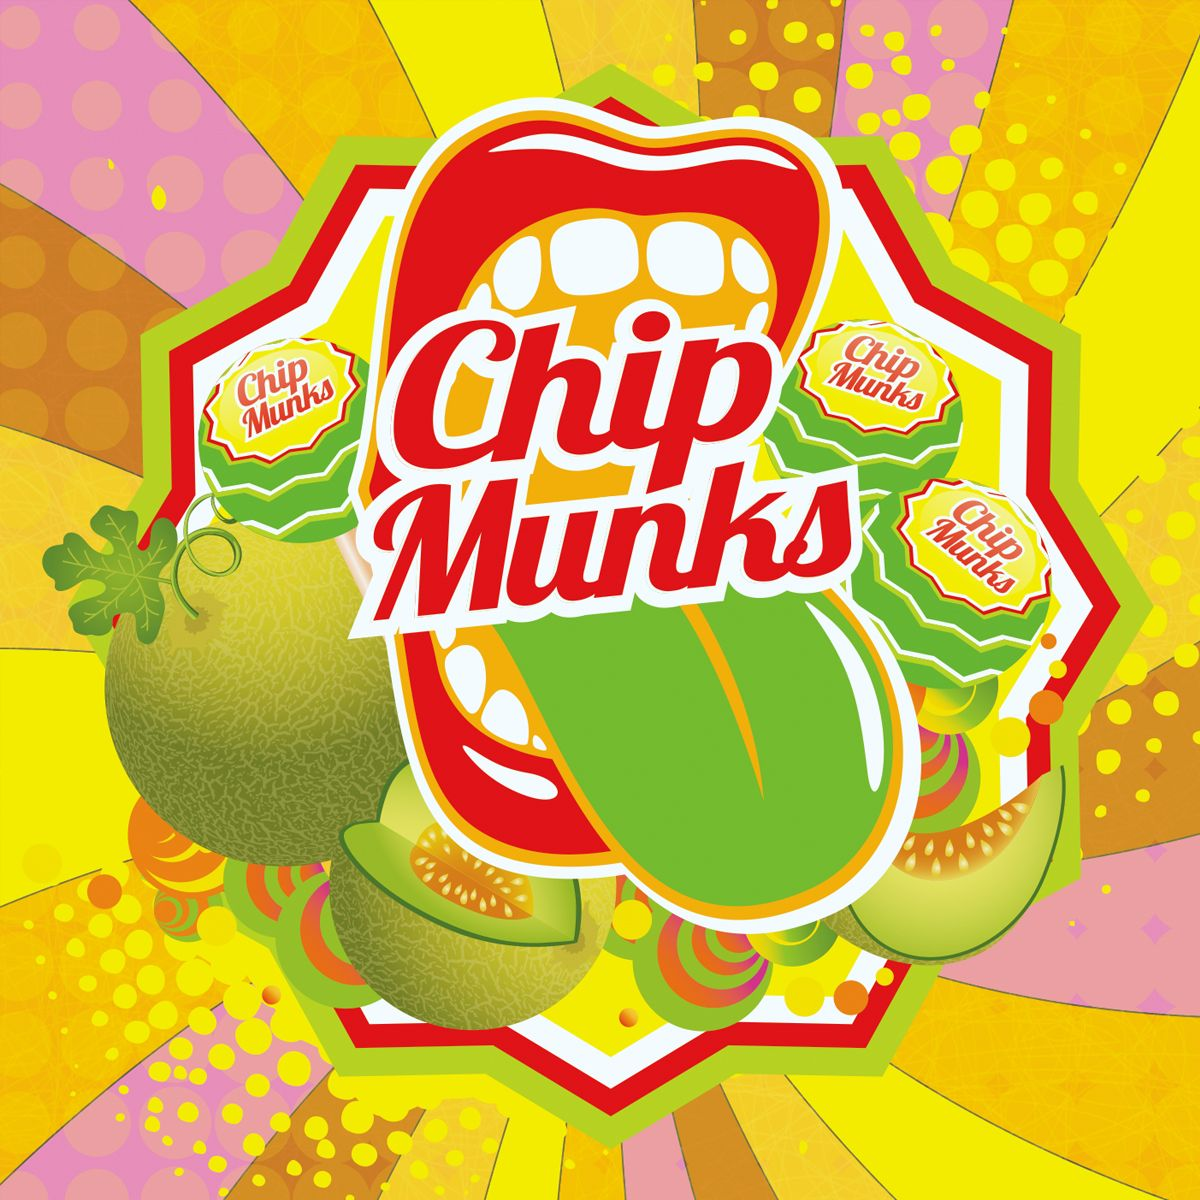 Příchut Big Mouth - Chip Munks - 10ml